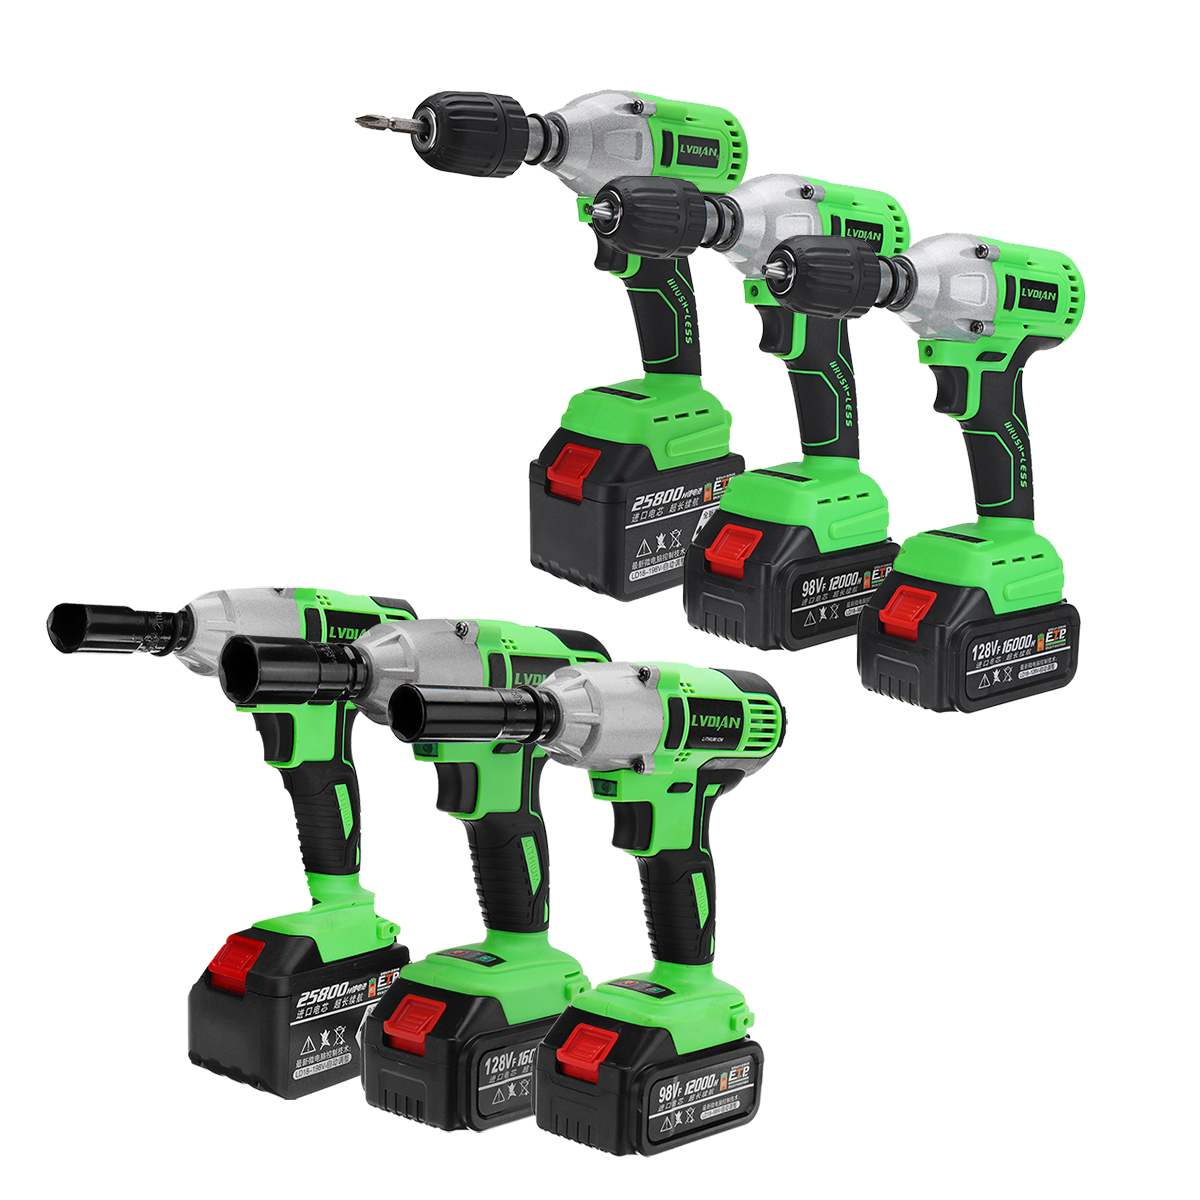 Electric Wrench Brushless Cordless Impact Wrench Kit 17pcs US Plug Non-slip Driver Hand Drill Socket Battery with LED Work Light